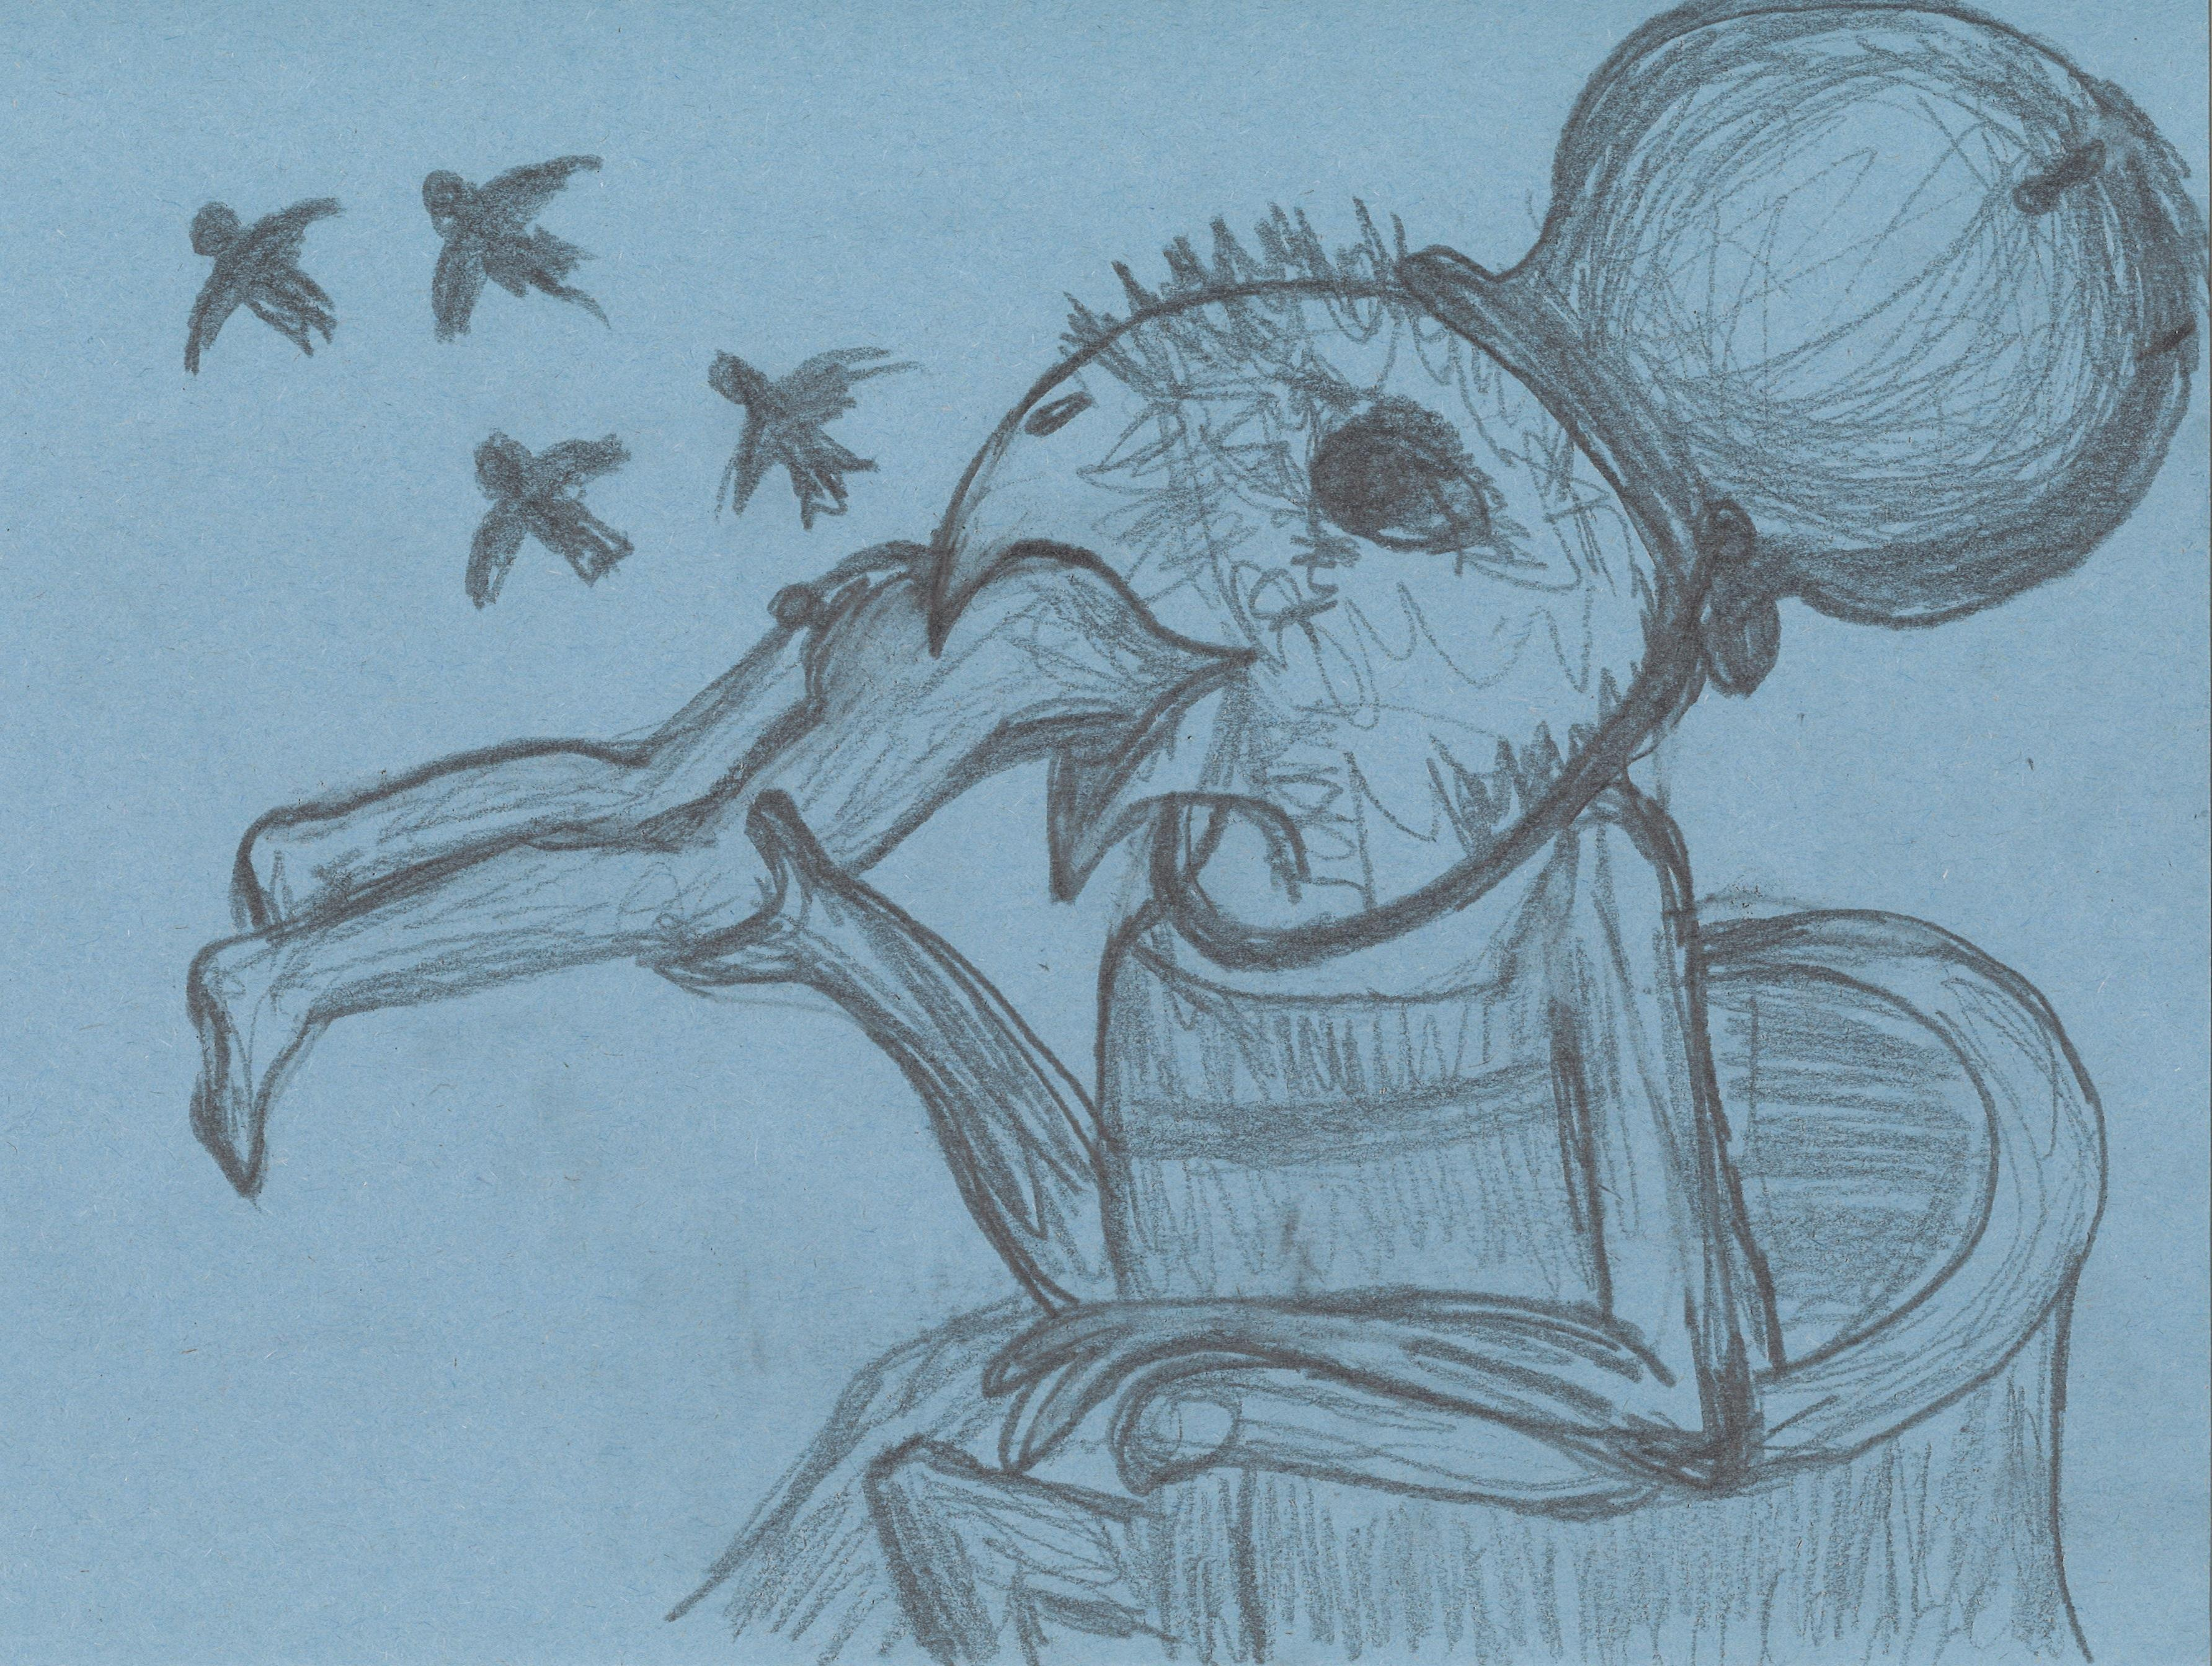 Pencil drawing on blue paper of a hybrid creature with a bird head and human body ingesting a nude human as four birds fly above them